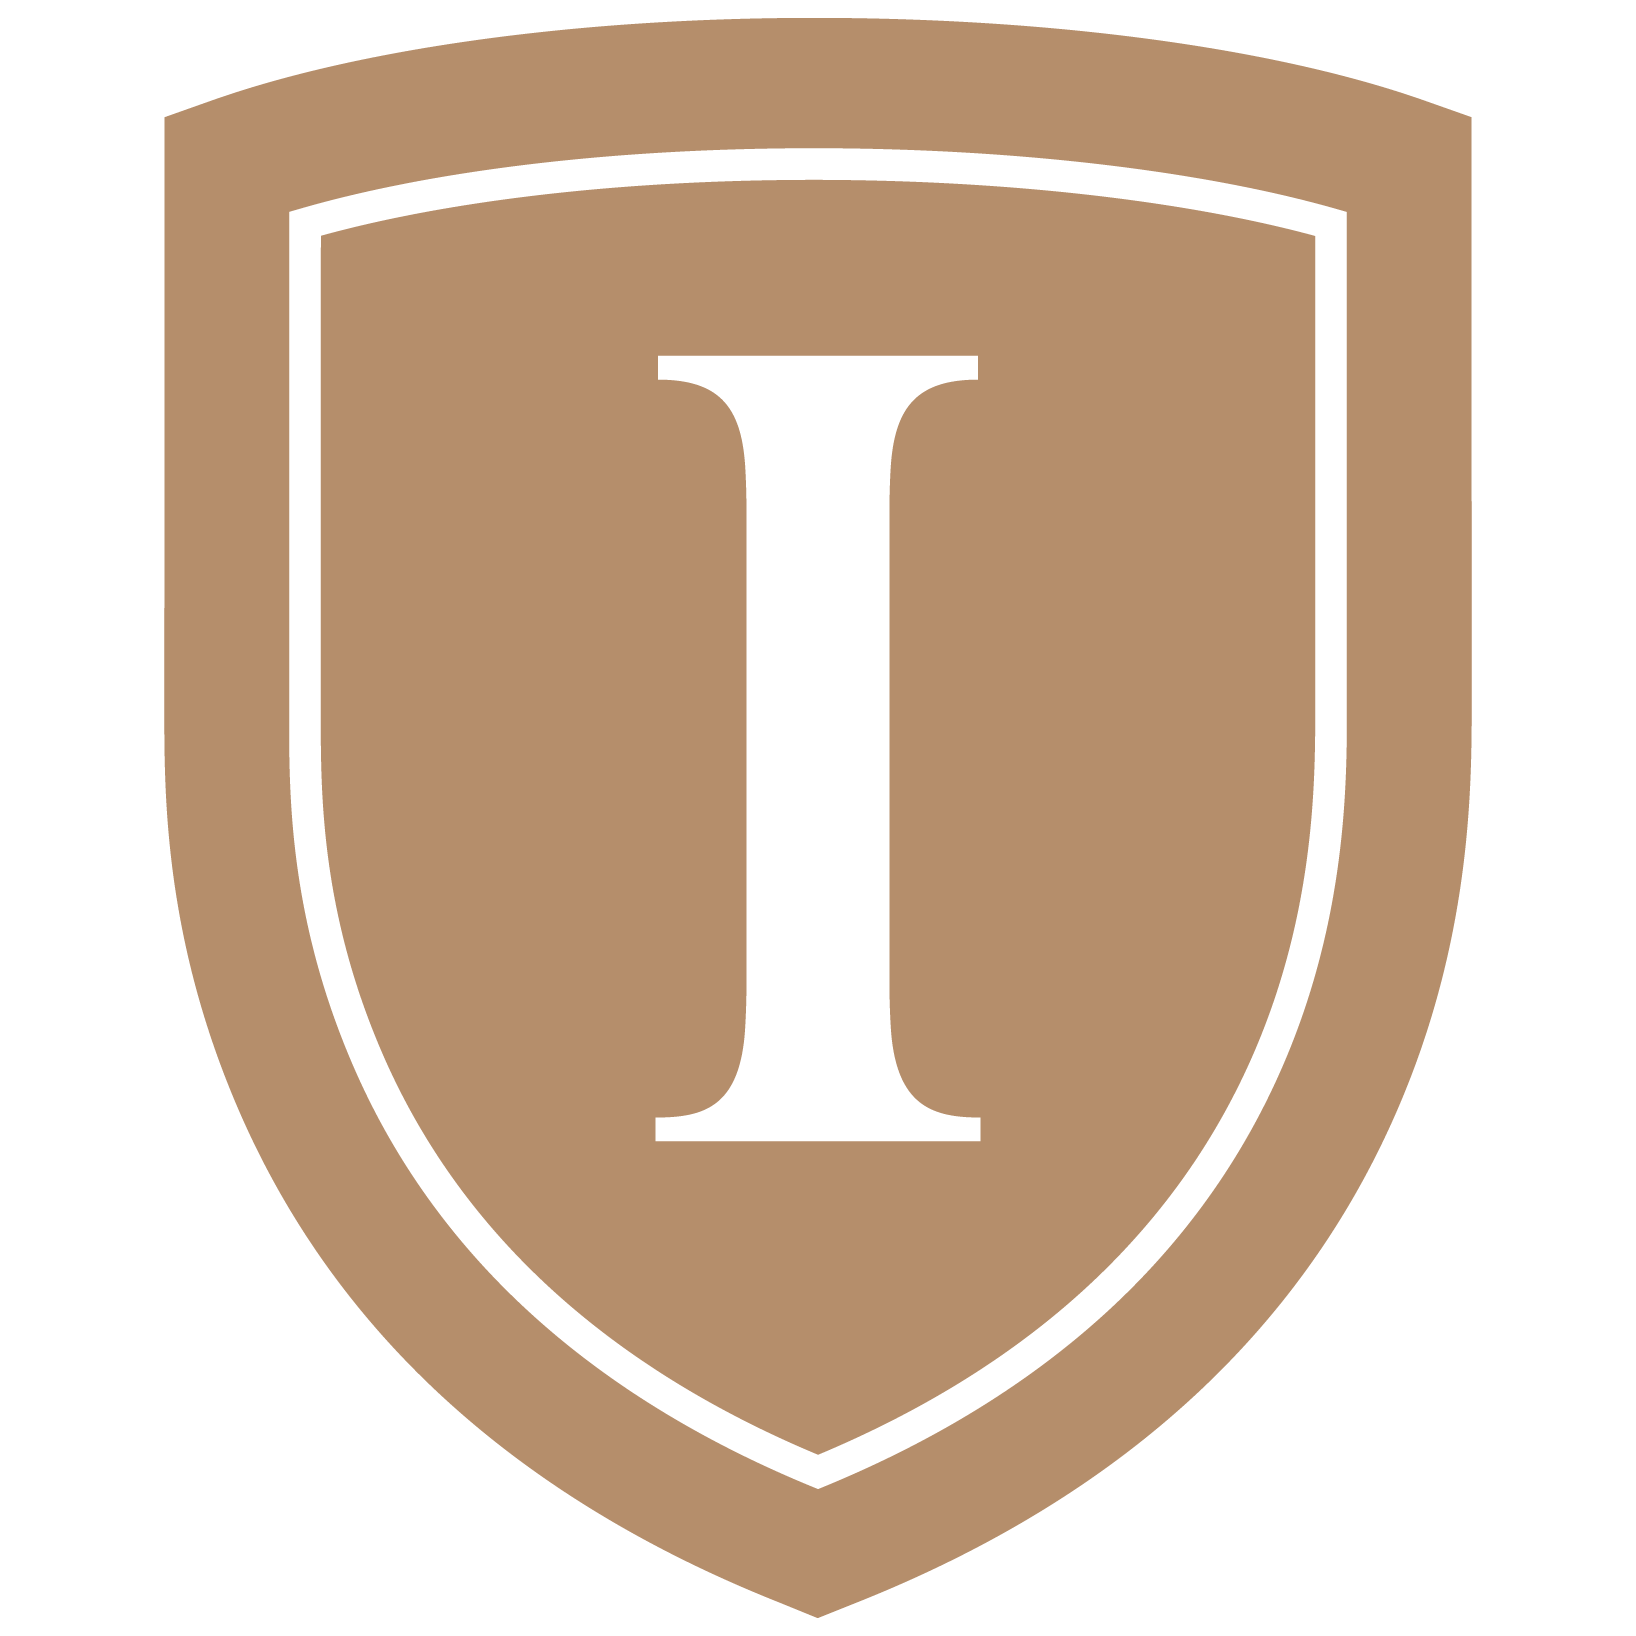 shield image